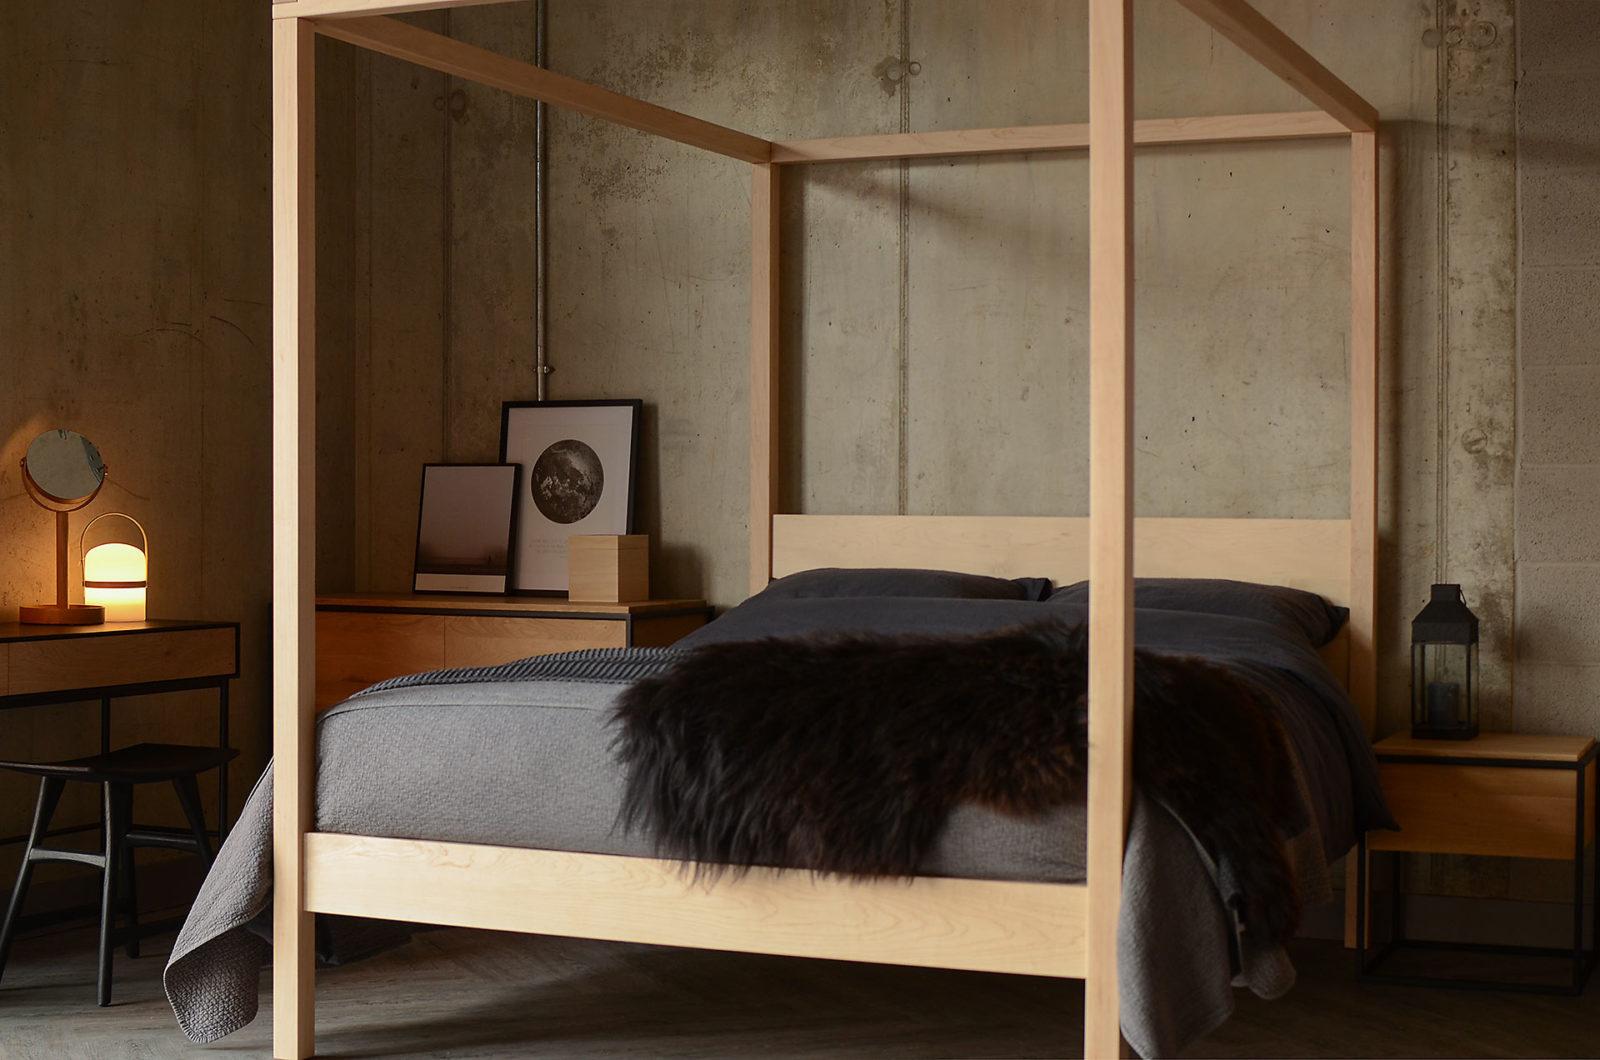 Hand made in Sheffield this is our Orchid Wooden 4 poster bed made from Maple